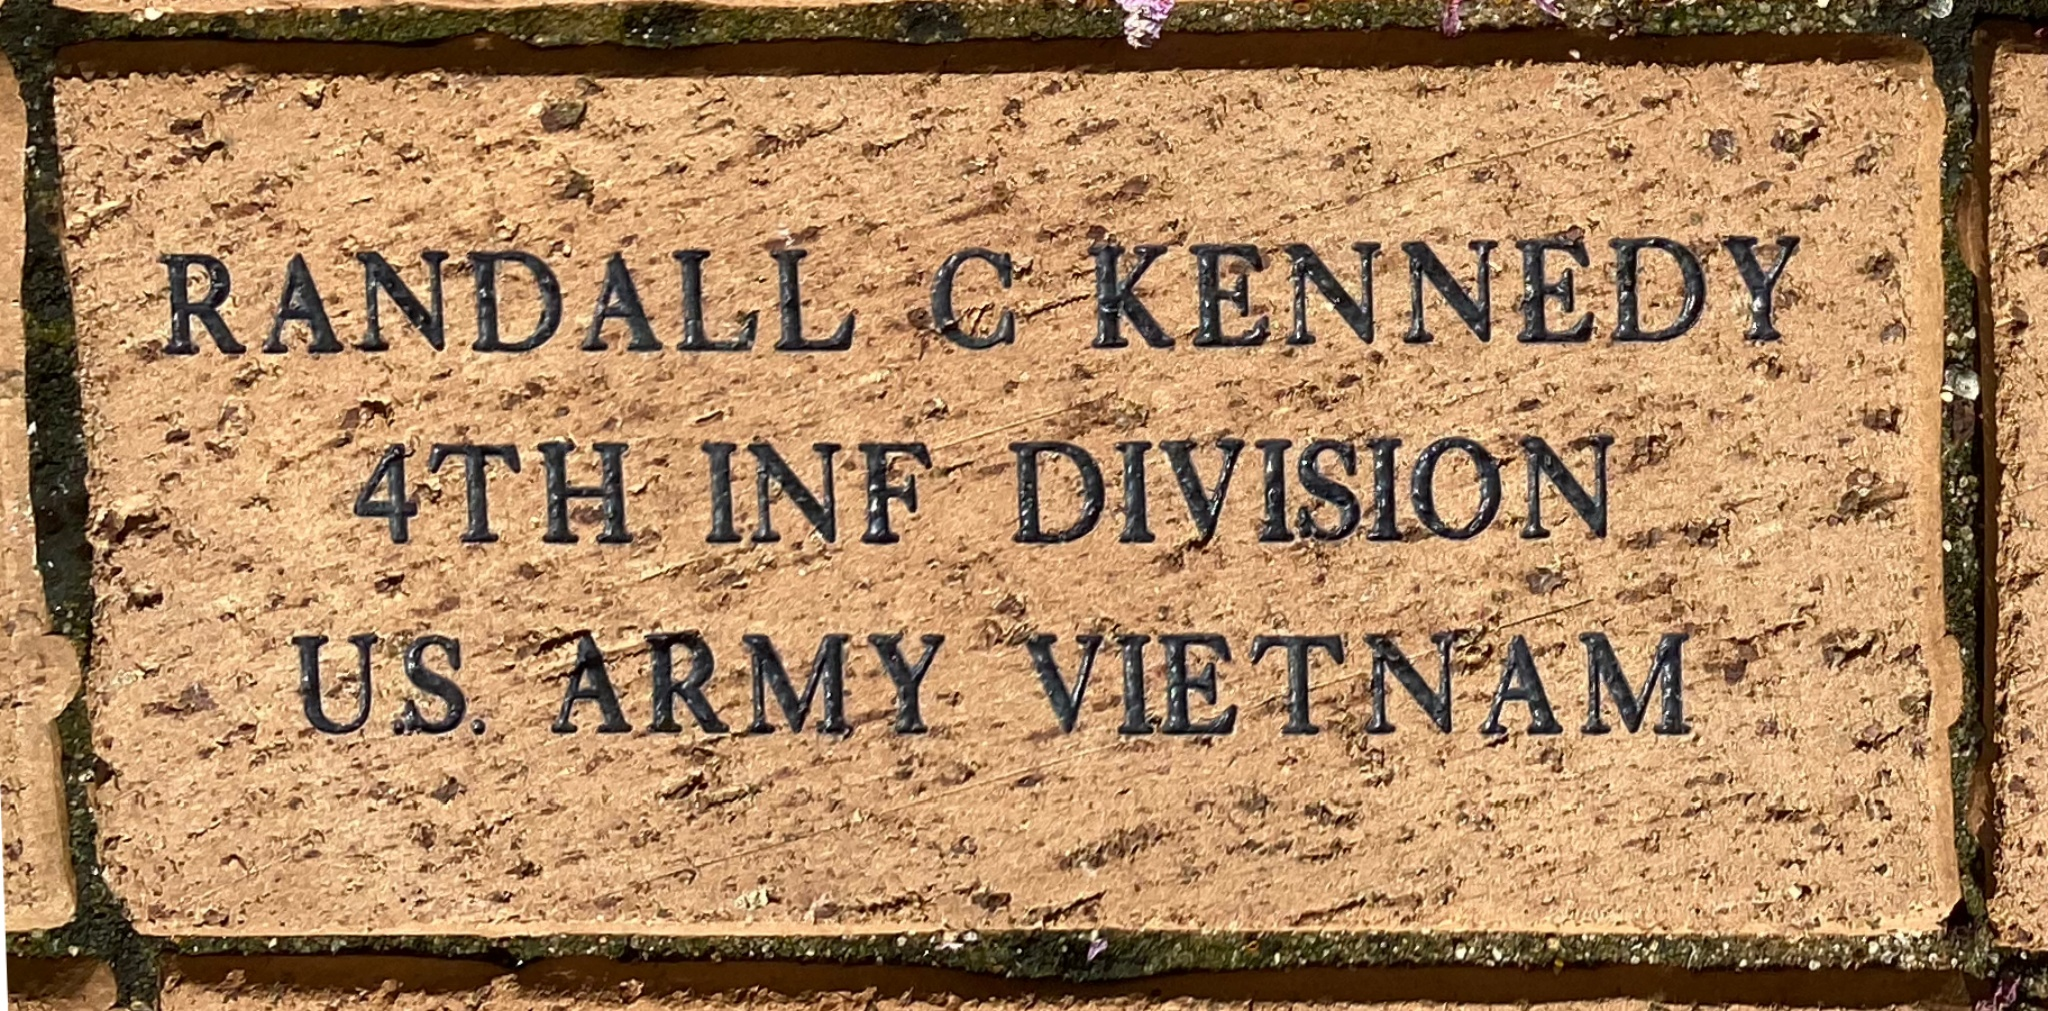 RANDALL C KENNEDY 4TH INF DIVISION U.S. ARMY VIETNAM